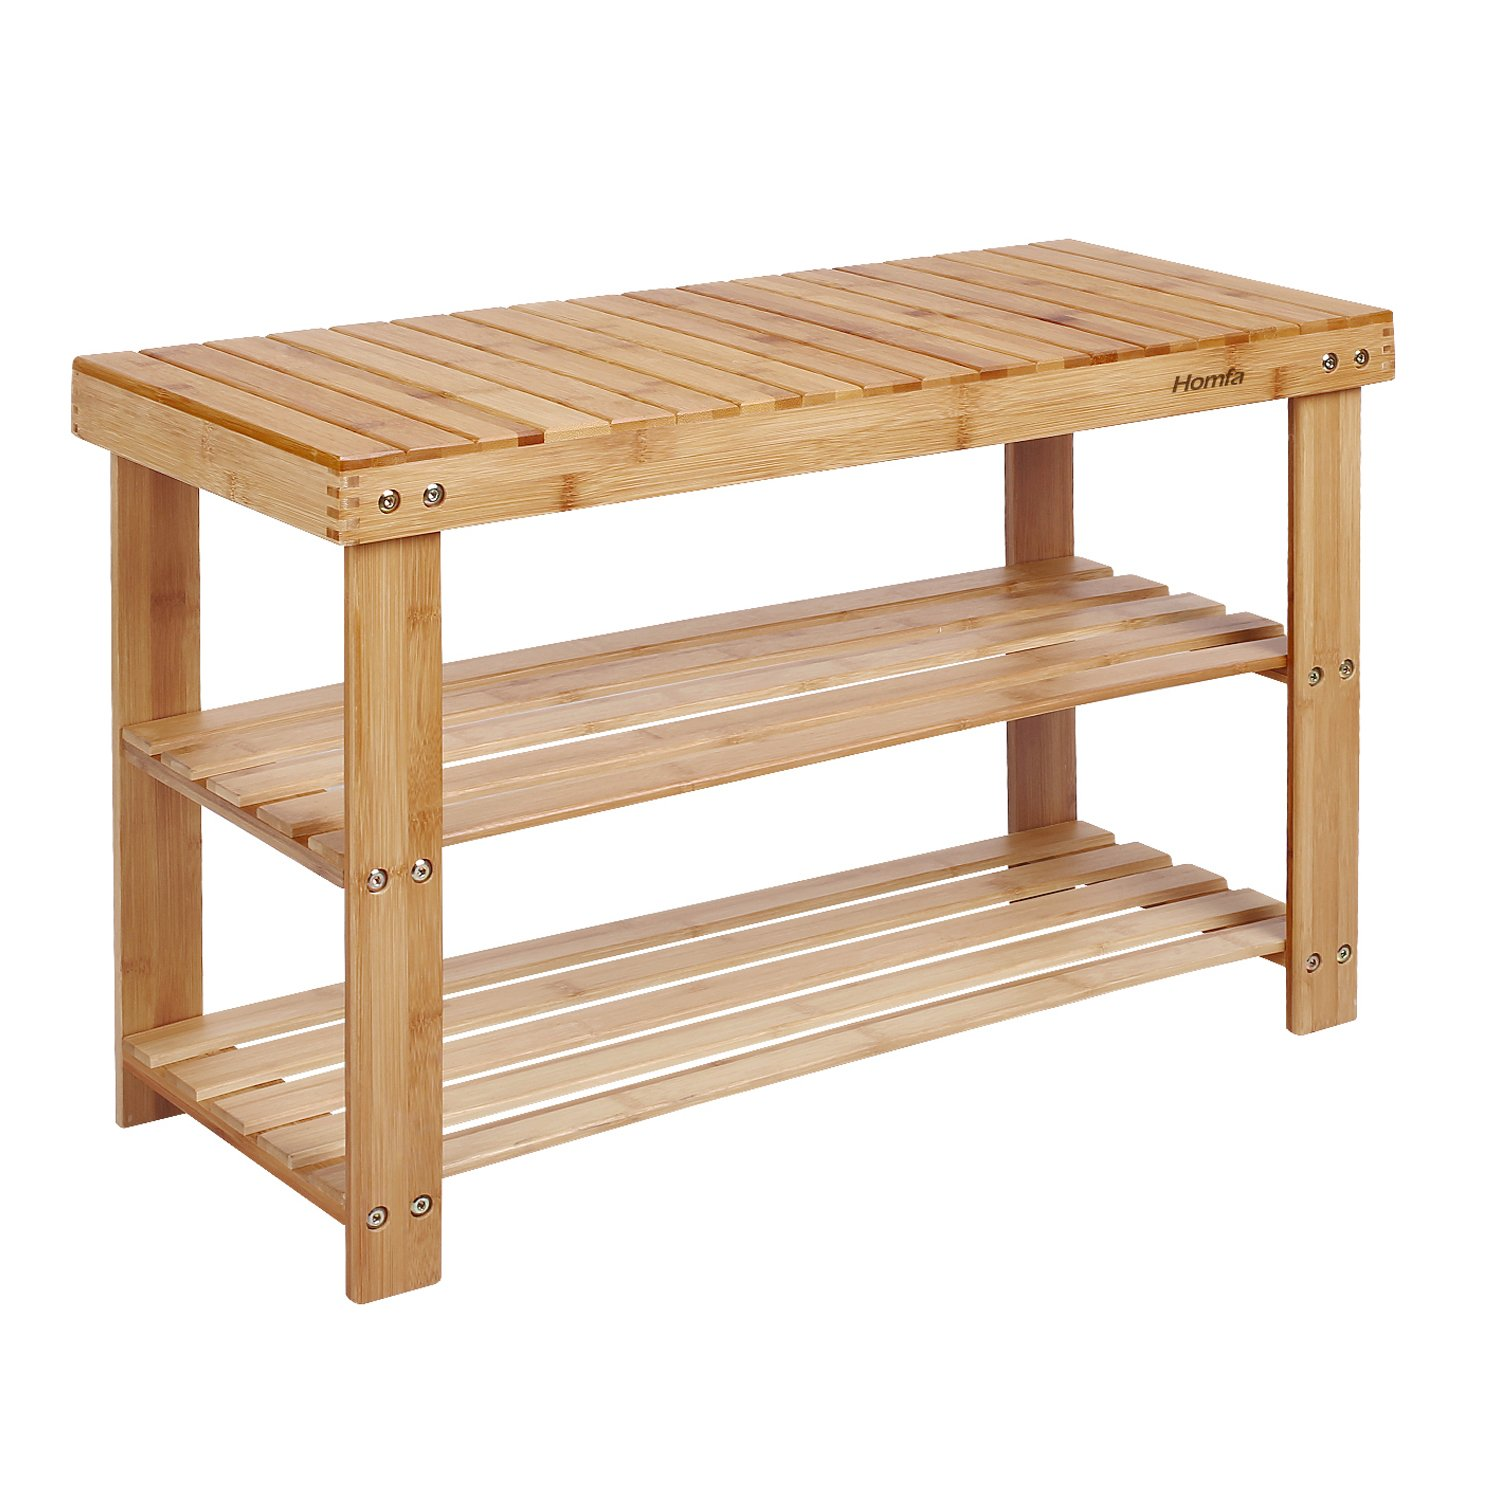 HOMFA Natural Bamboo Shoe Rack Bench 2 Tier Shoe Organizer Entryway Seat Storage Shelf Hallway Furniture(Q12-4) COMIN18JU091045